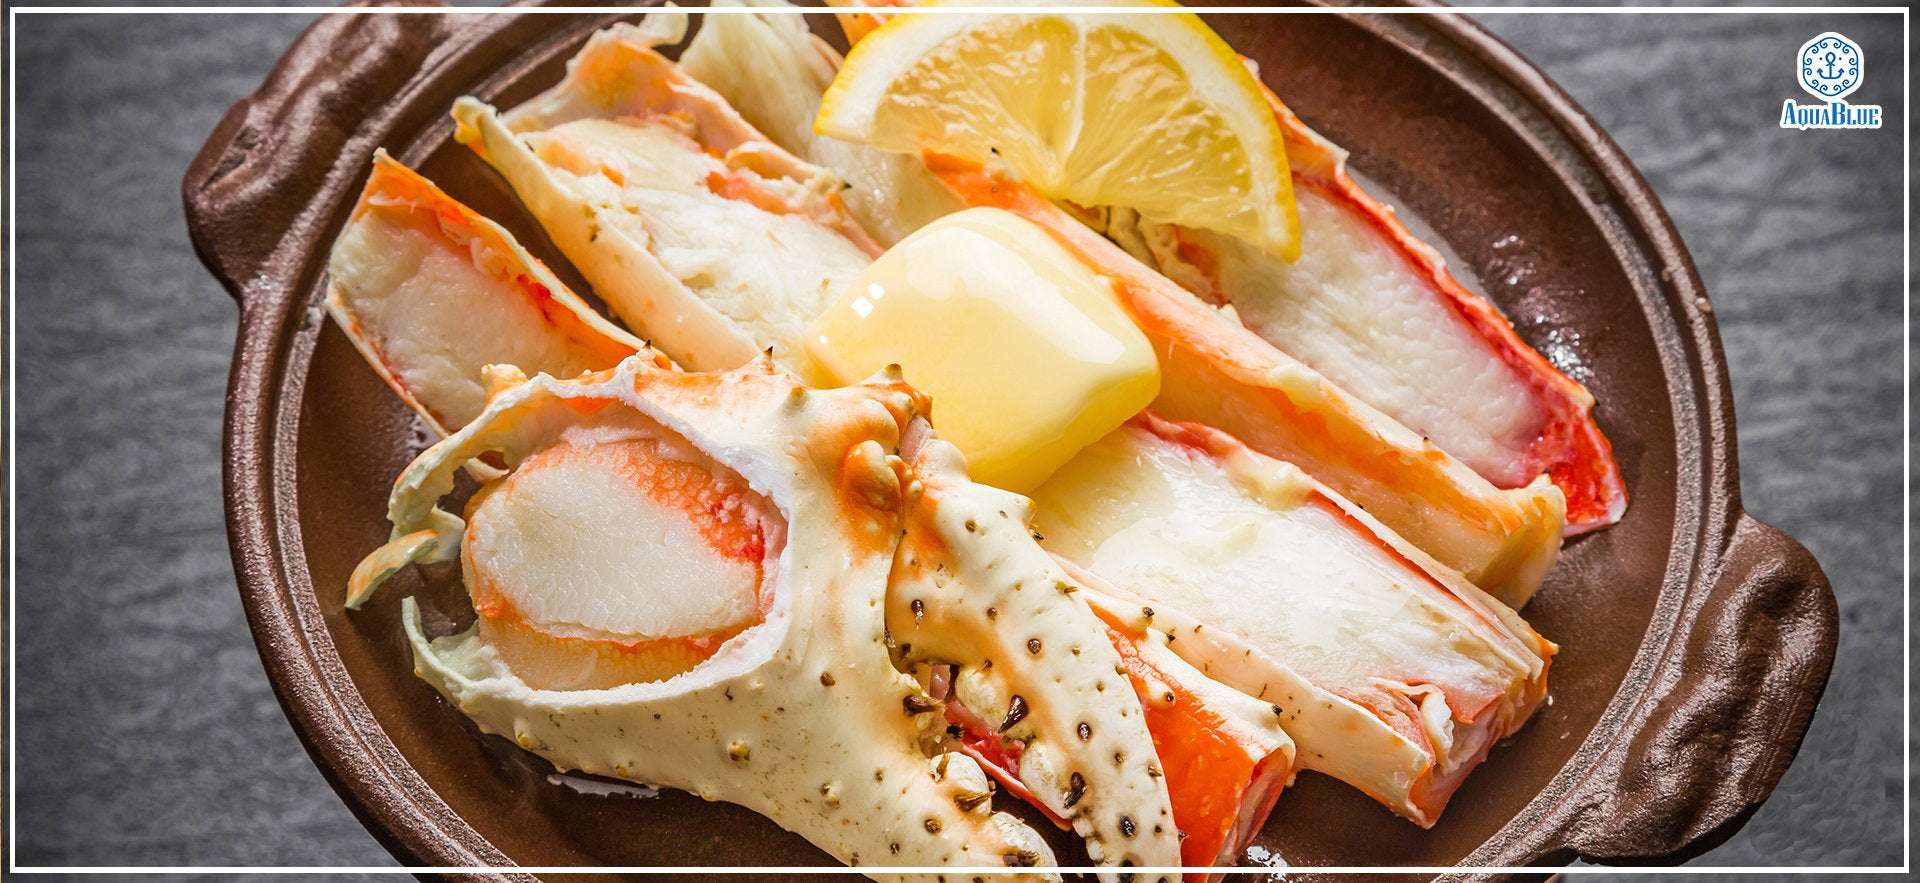 Aquablue-Blue-King-Crab